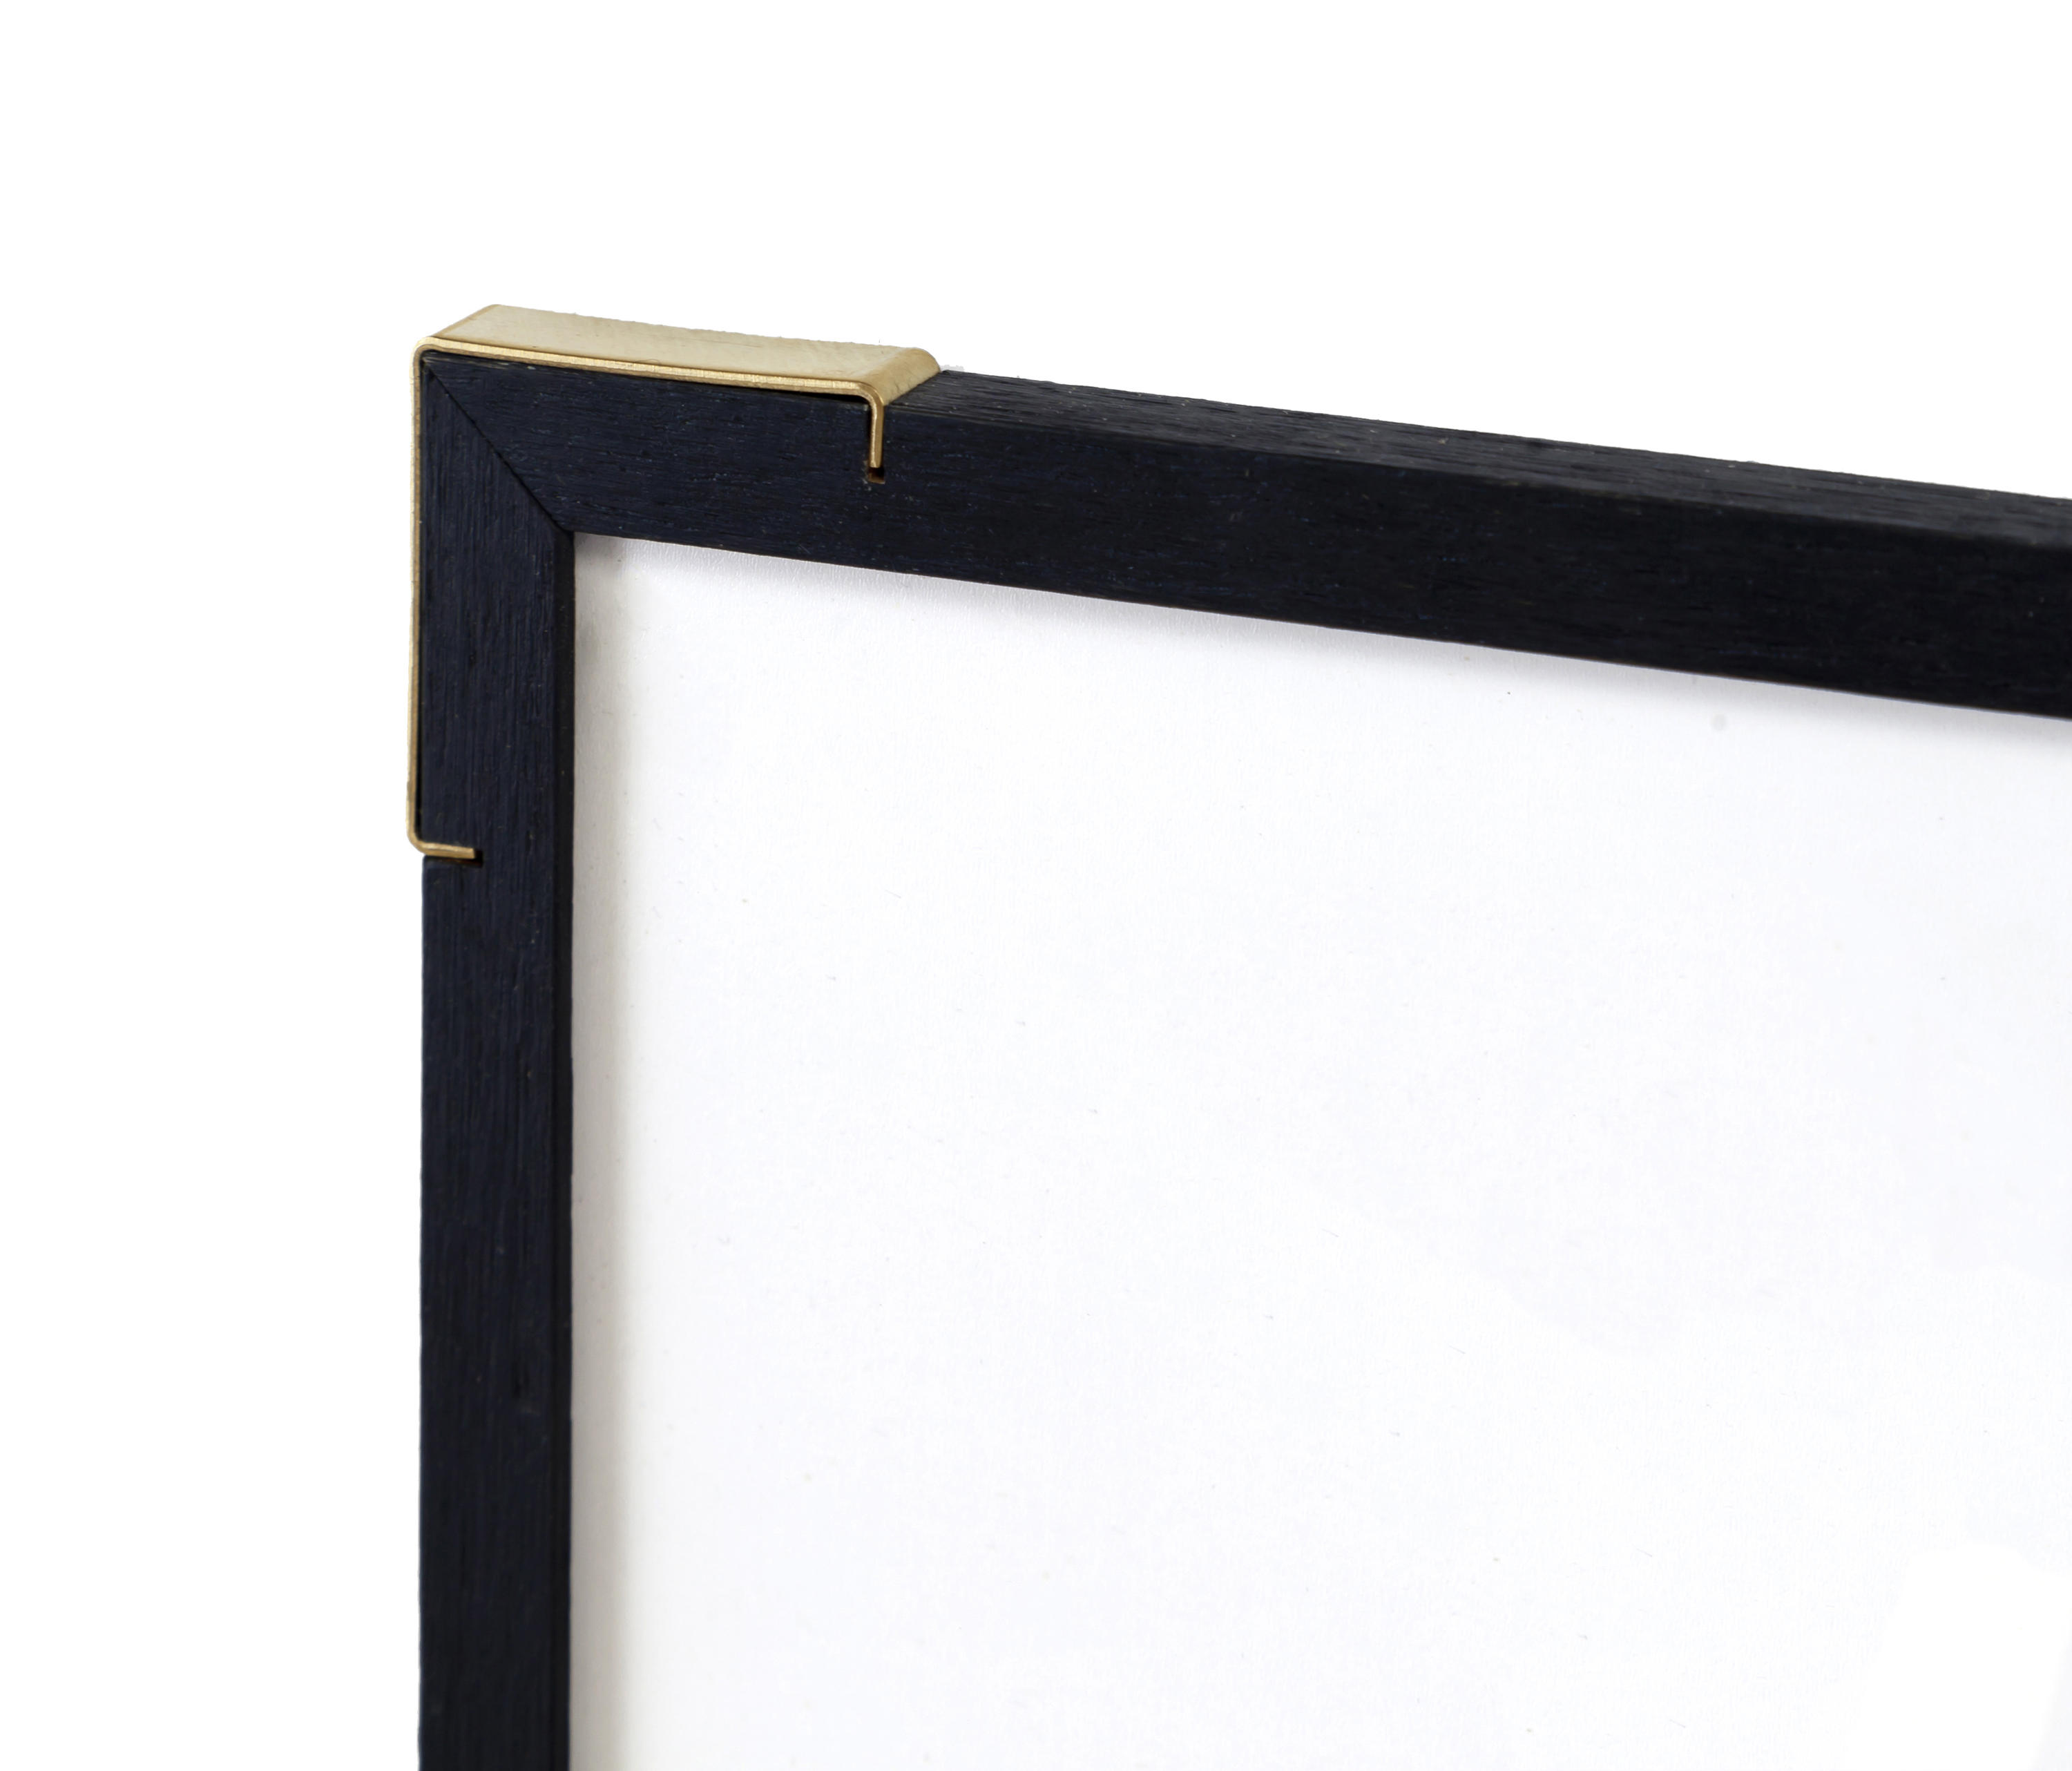 EPAULETTE \'BLACK EDITION\' A3 | BRASS CORNERS - Picture frames from ...